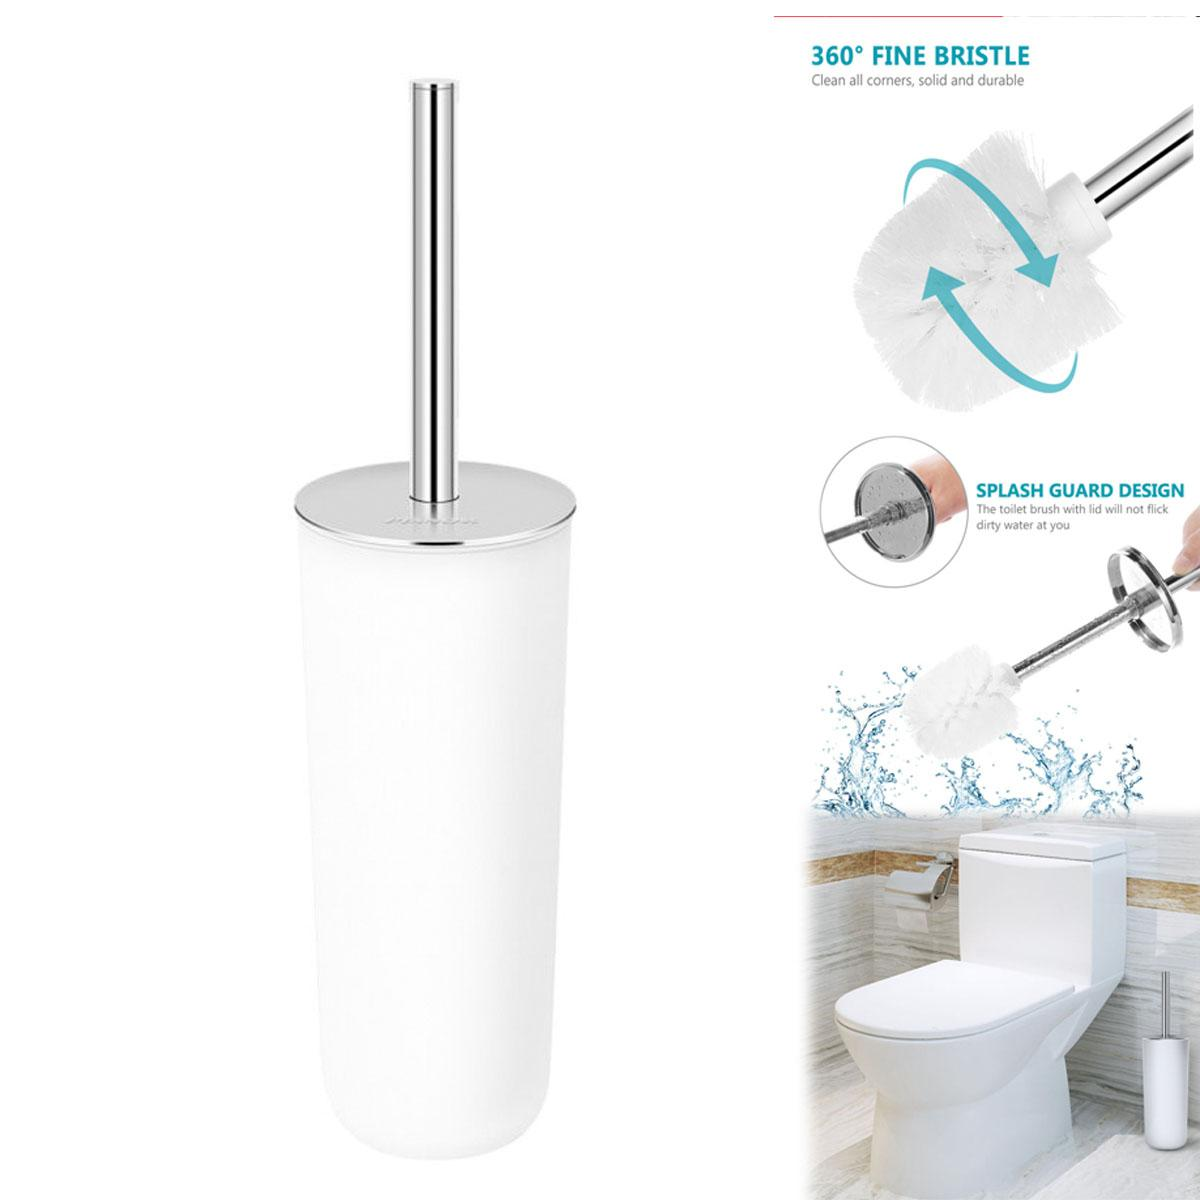 Toilet Brush Holder Set Stainless Steel Grip Compact Modern Design Toilet Bowl Cleaner Brush Set Stand For Bathroom Cleaning